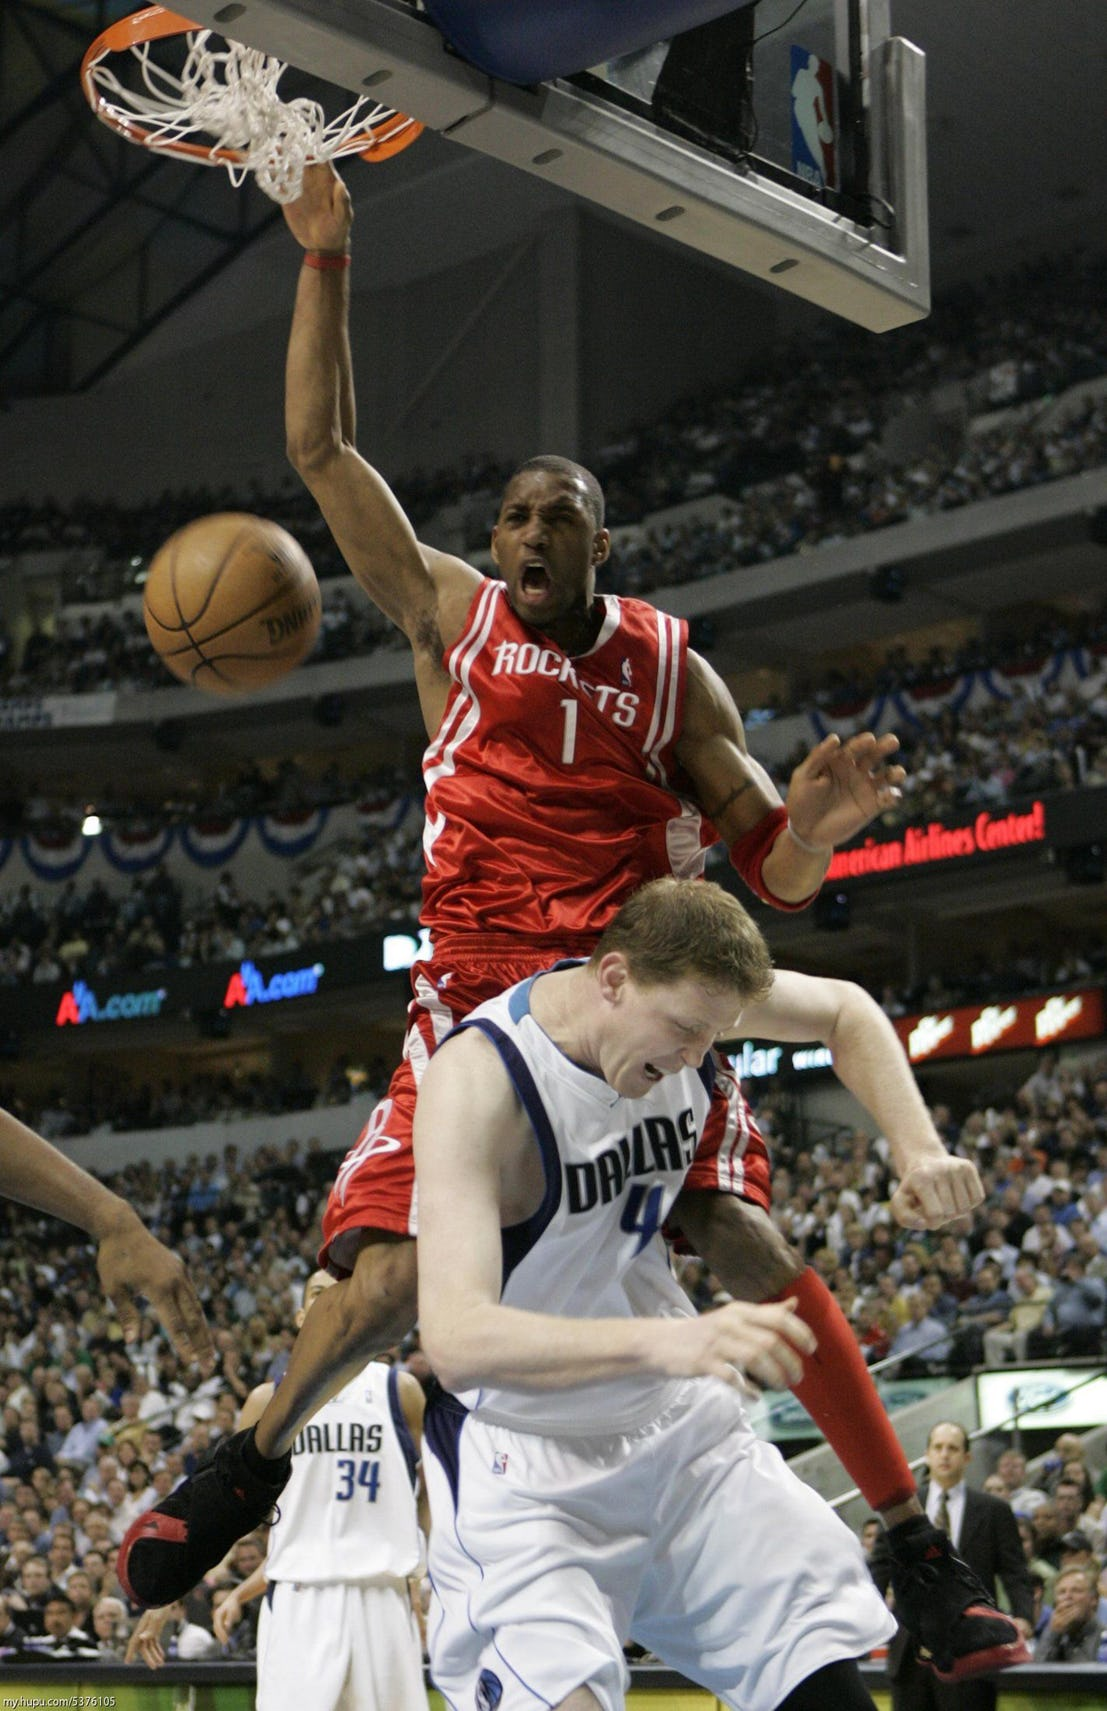 Tracy McGrady Makes Shawn Bradley A Big Lil' Bitch